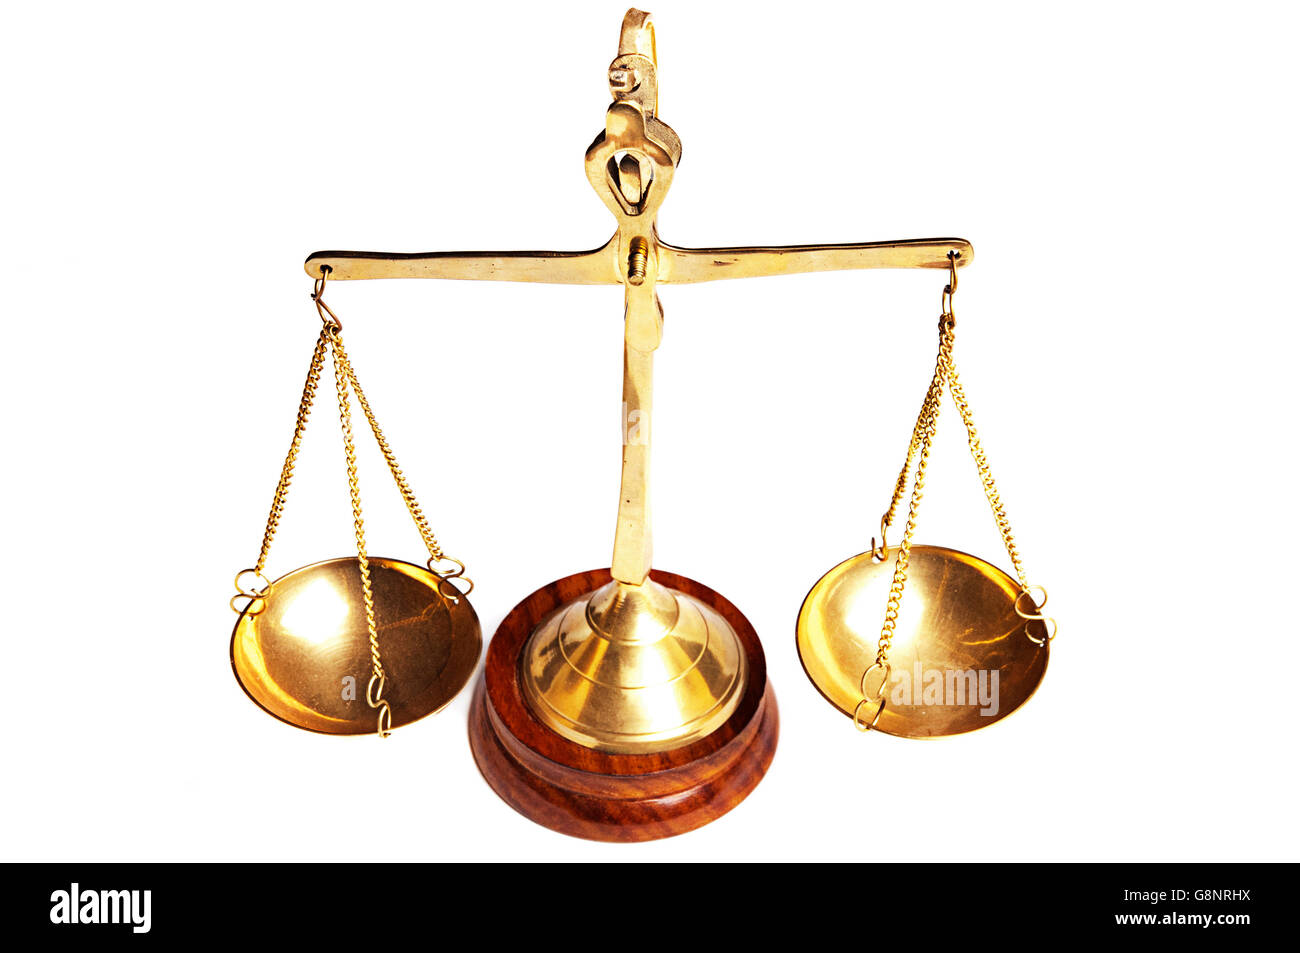 justice scales isolated - Stock Image